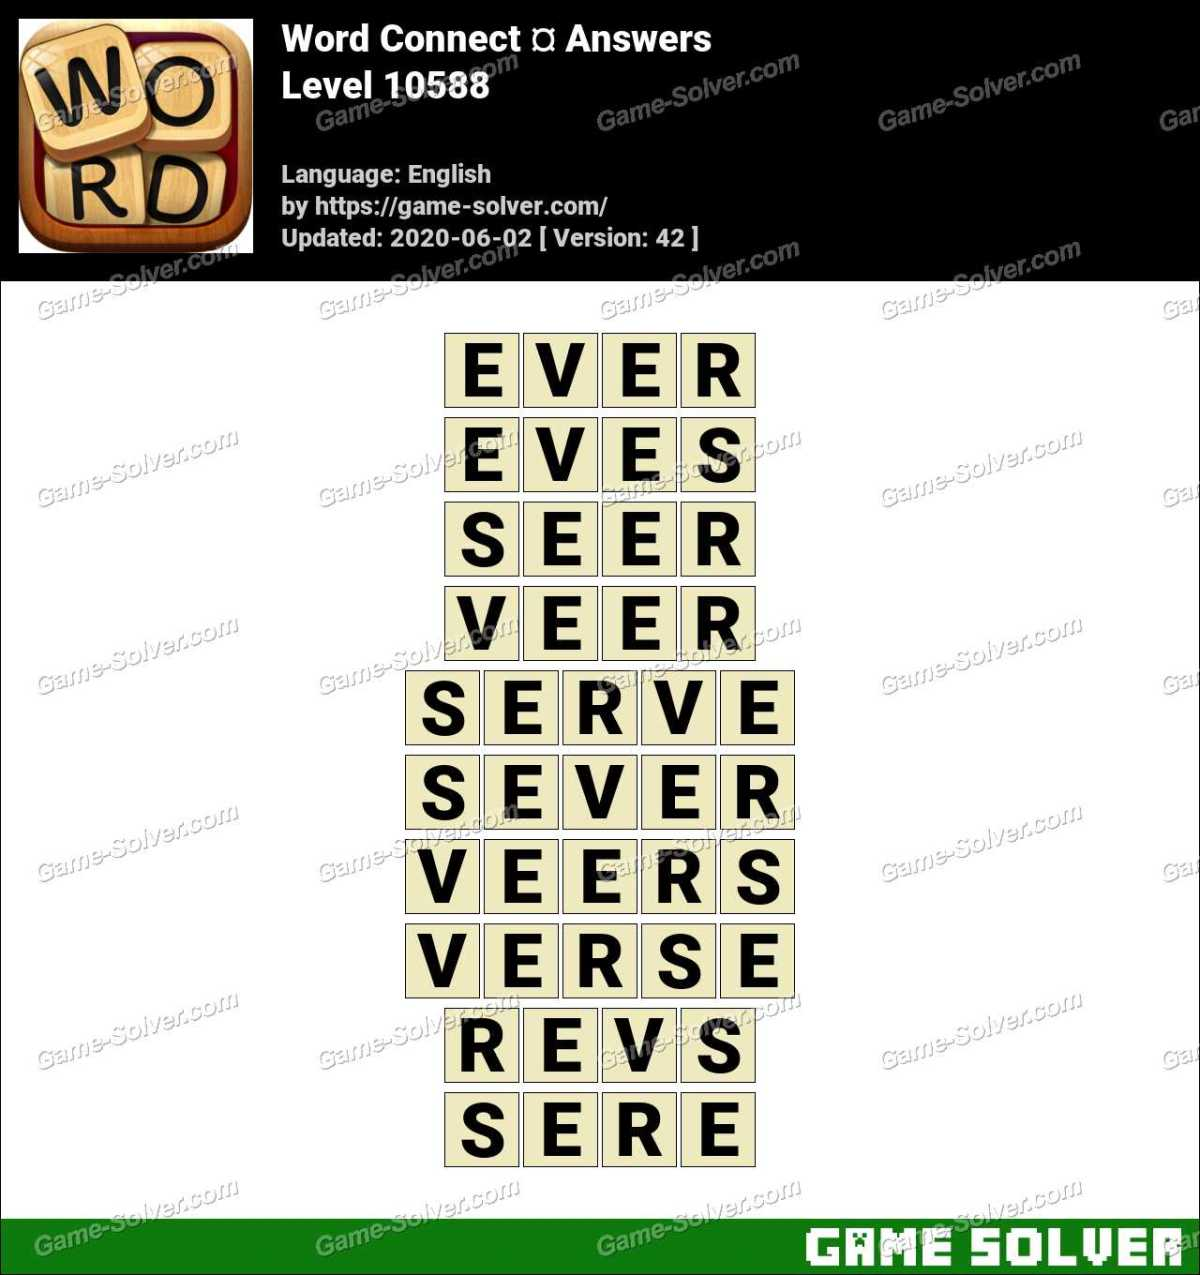 Word Connect Level 10588 Answers